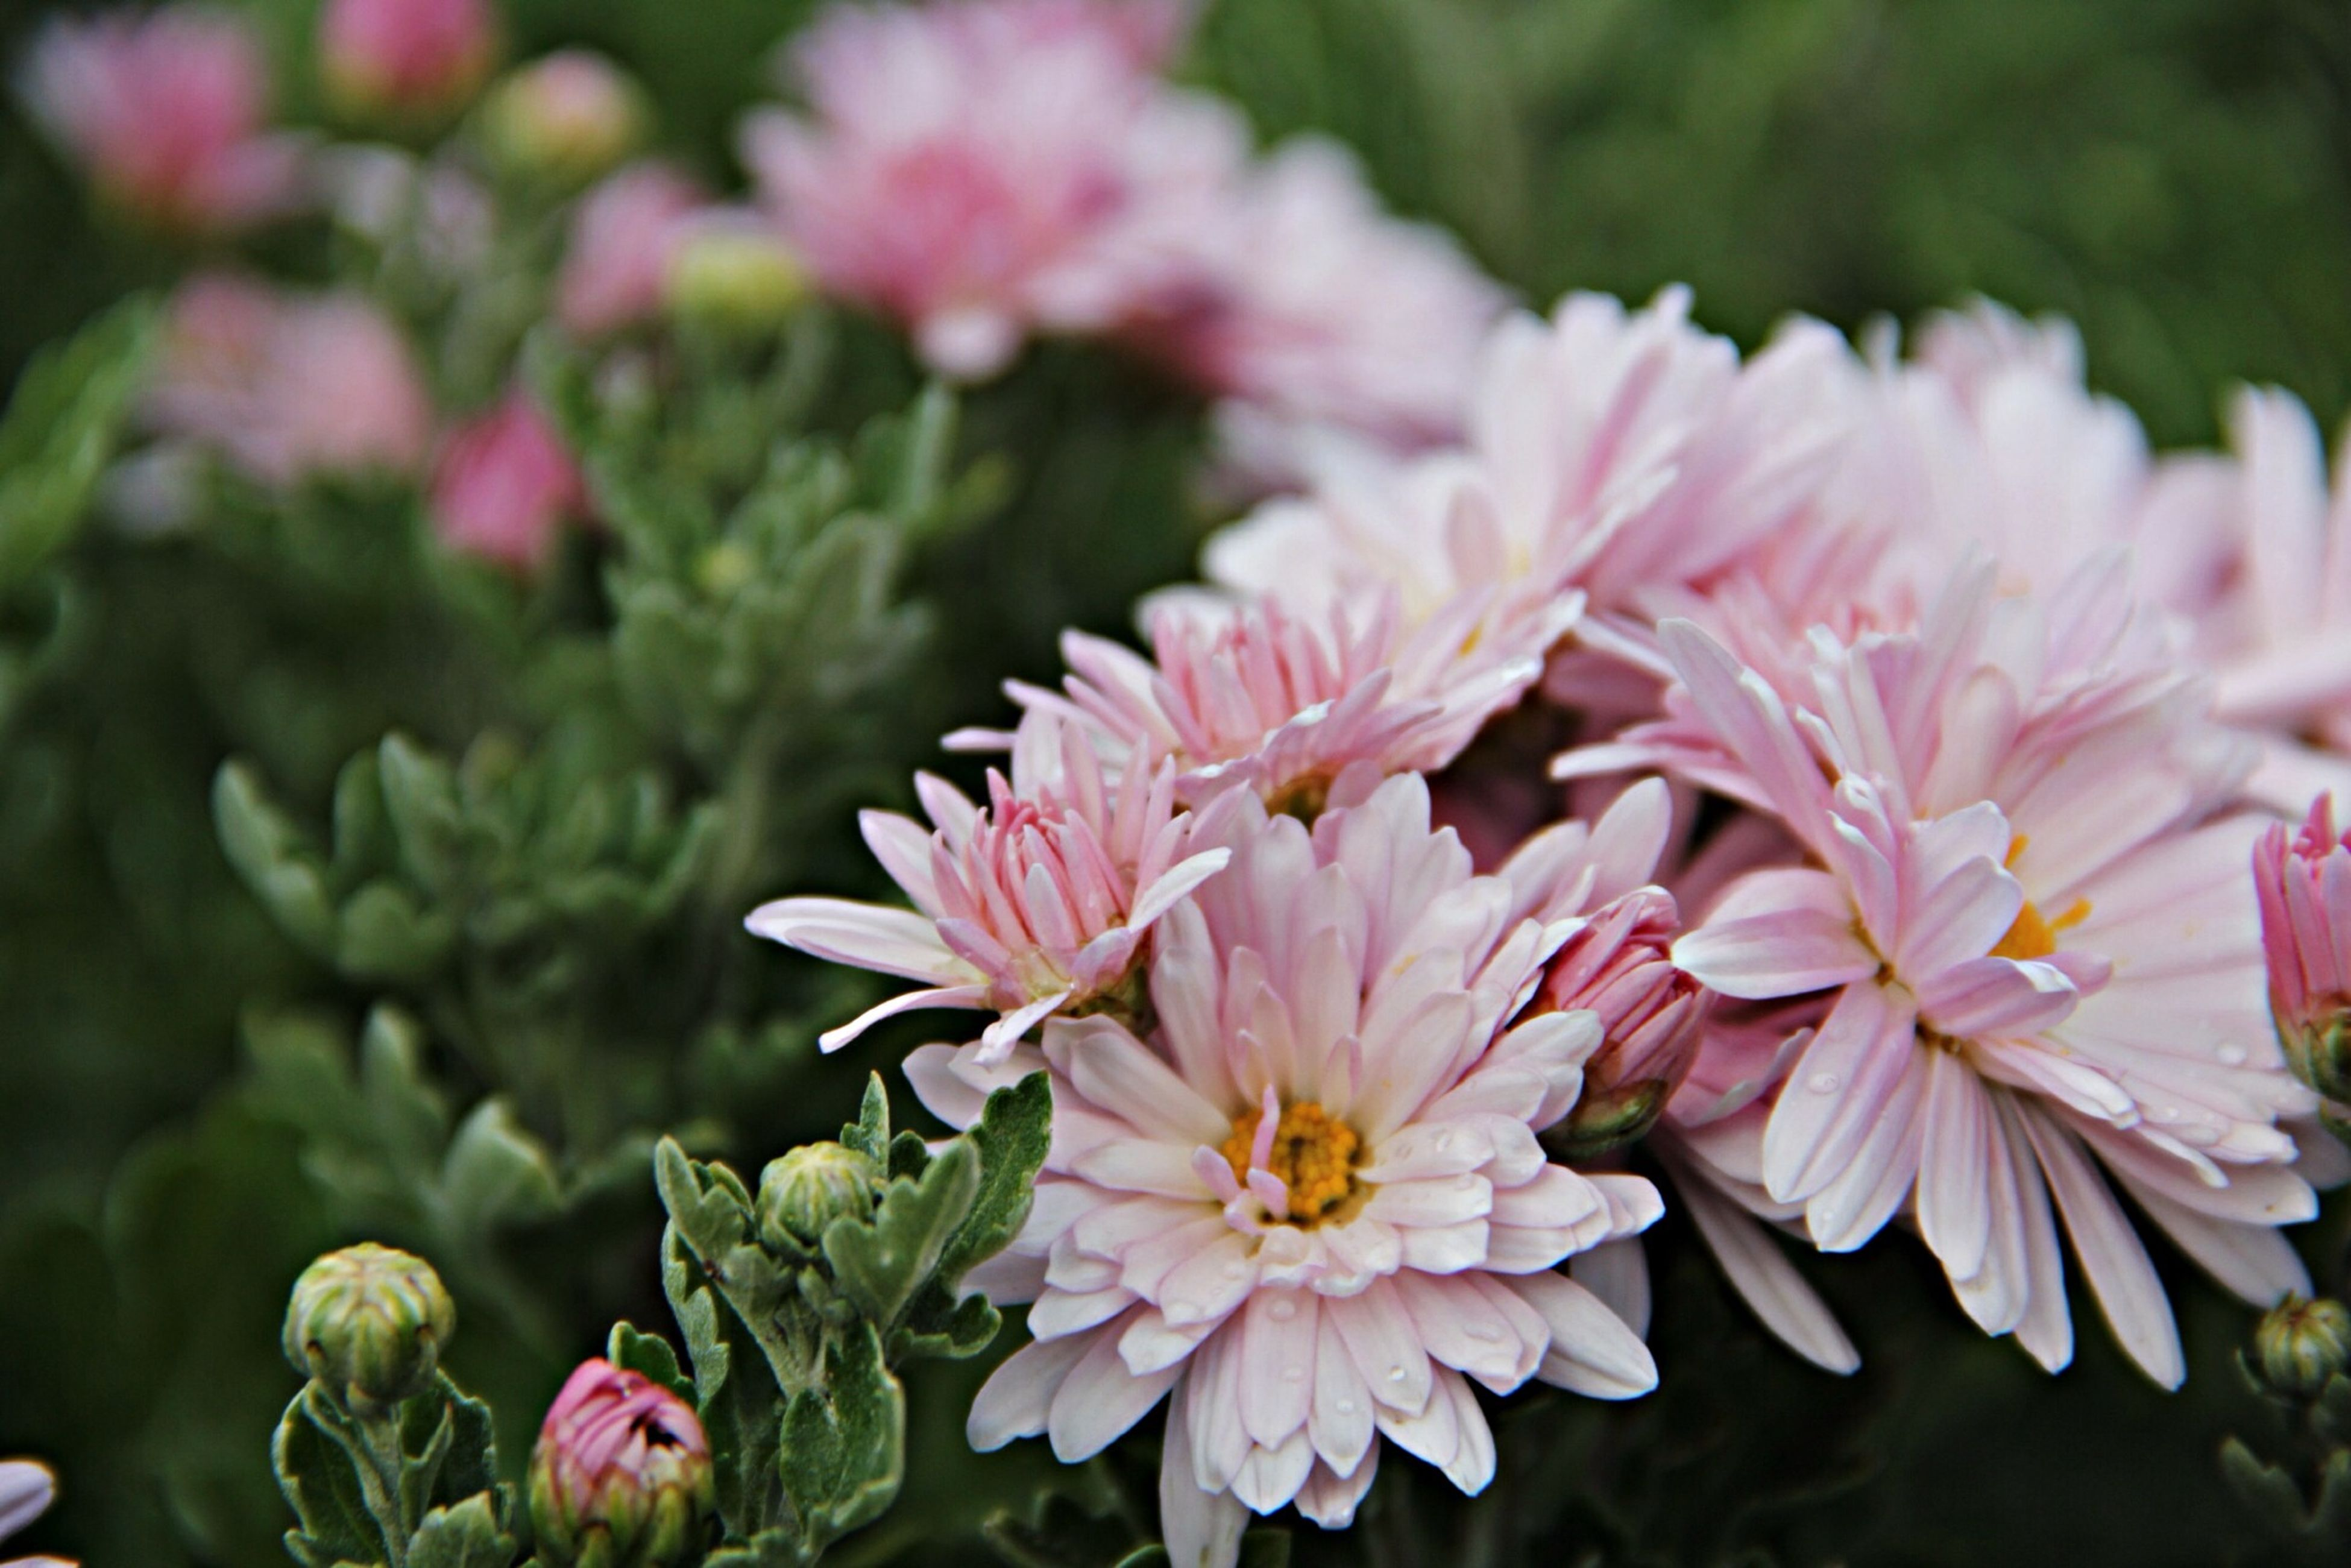 flower, freshness, petal, fragility, pink color, growth, flower head, beauty in nature, focus on foreground, blooming, close-up, nature, plant, in bloom, park - man made space, pink, outdoors, day, selective focus, blossom